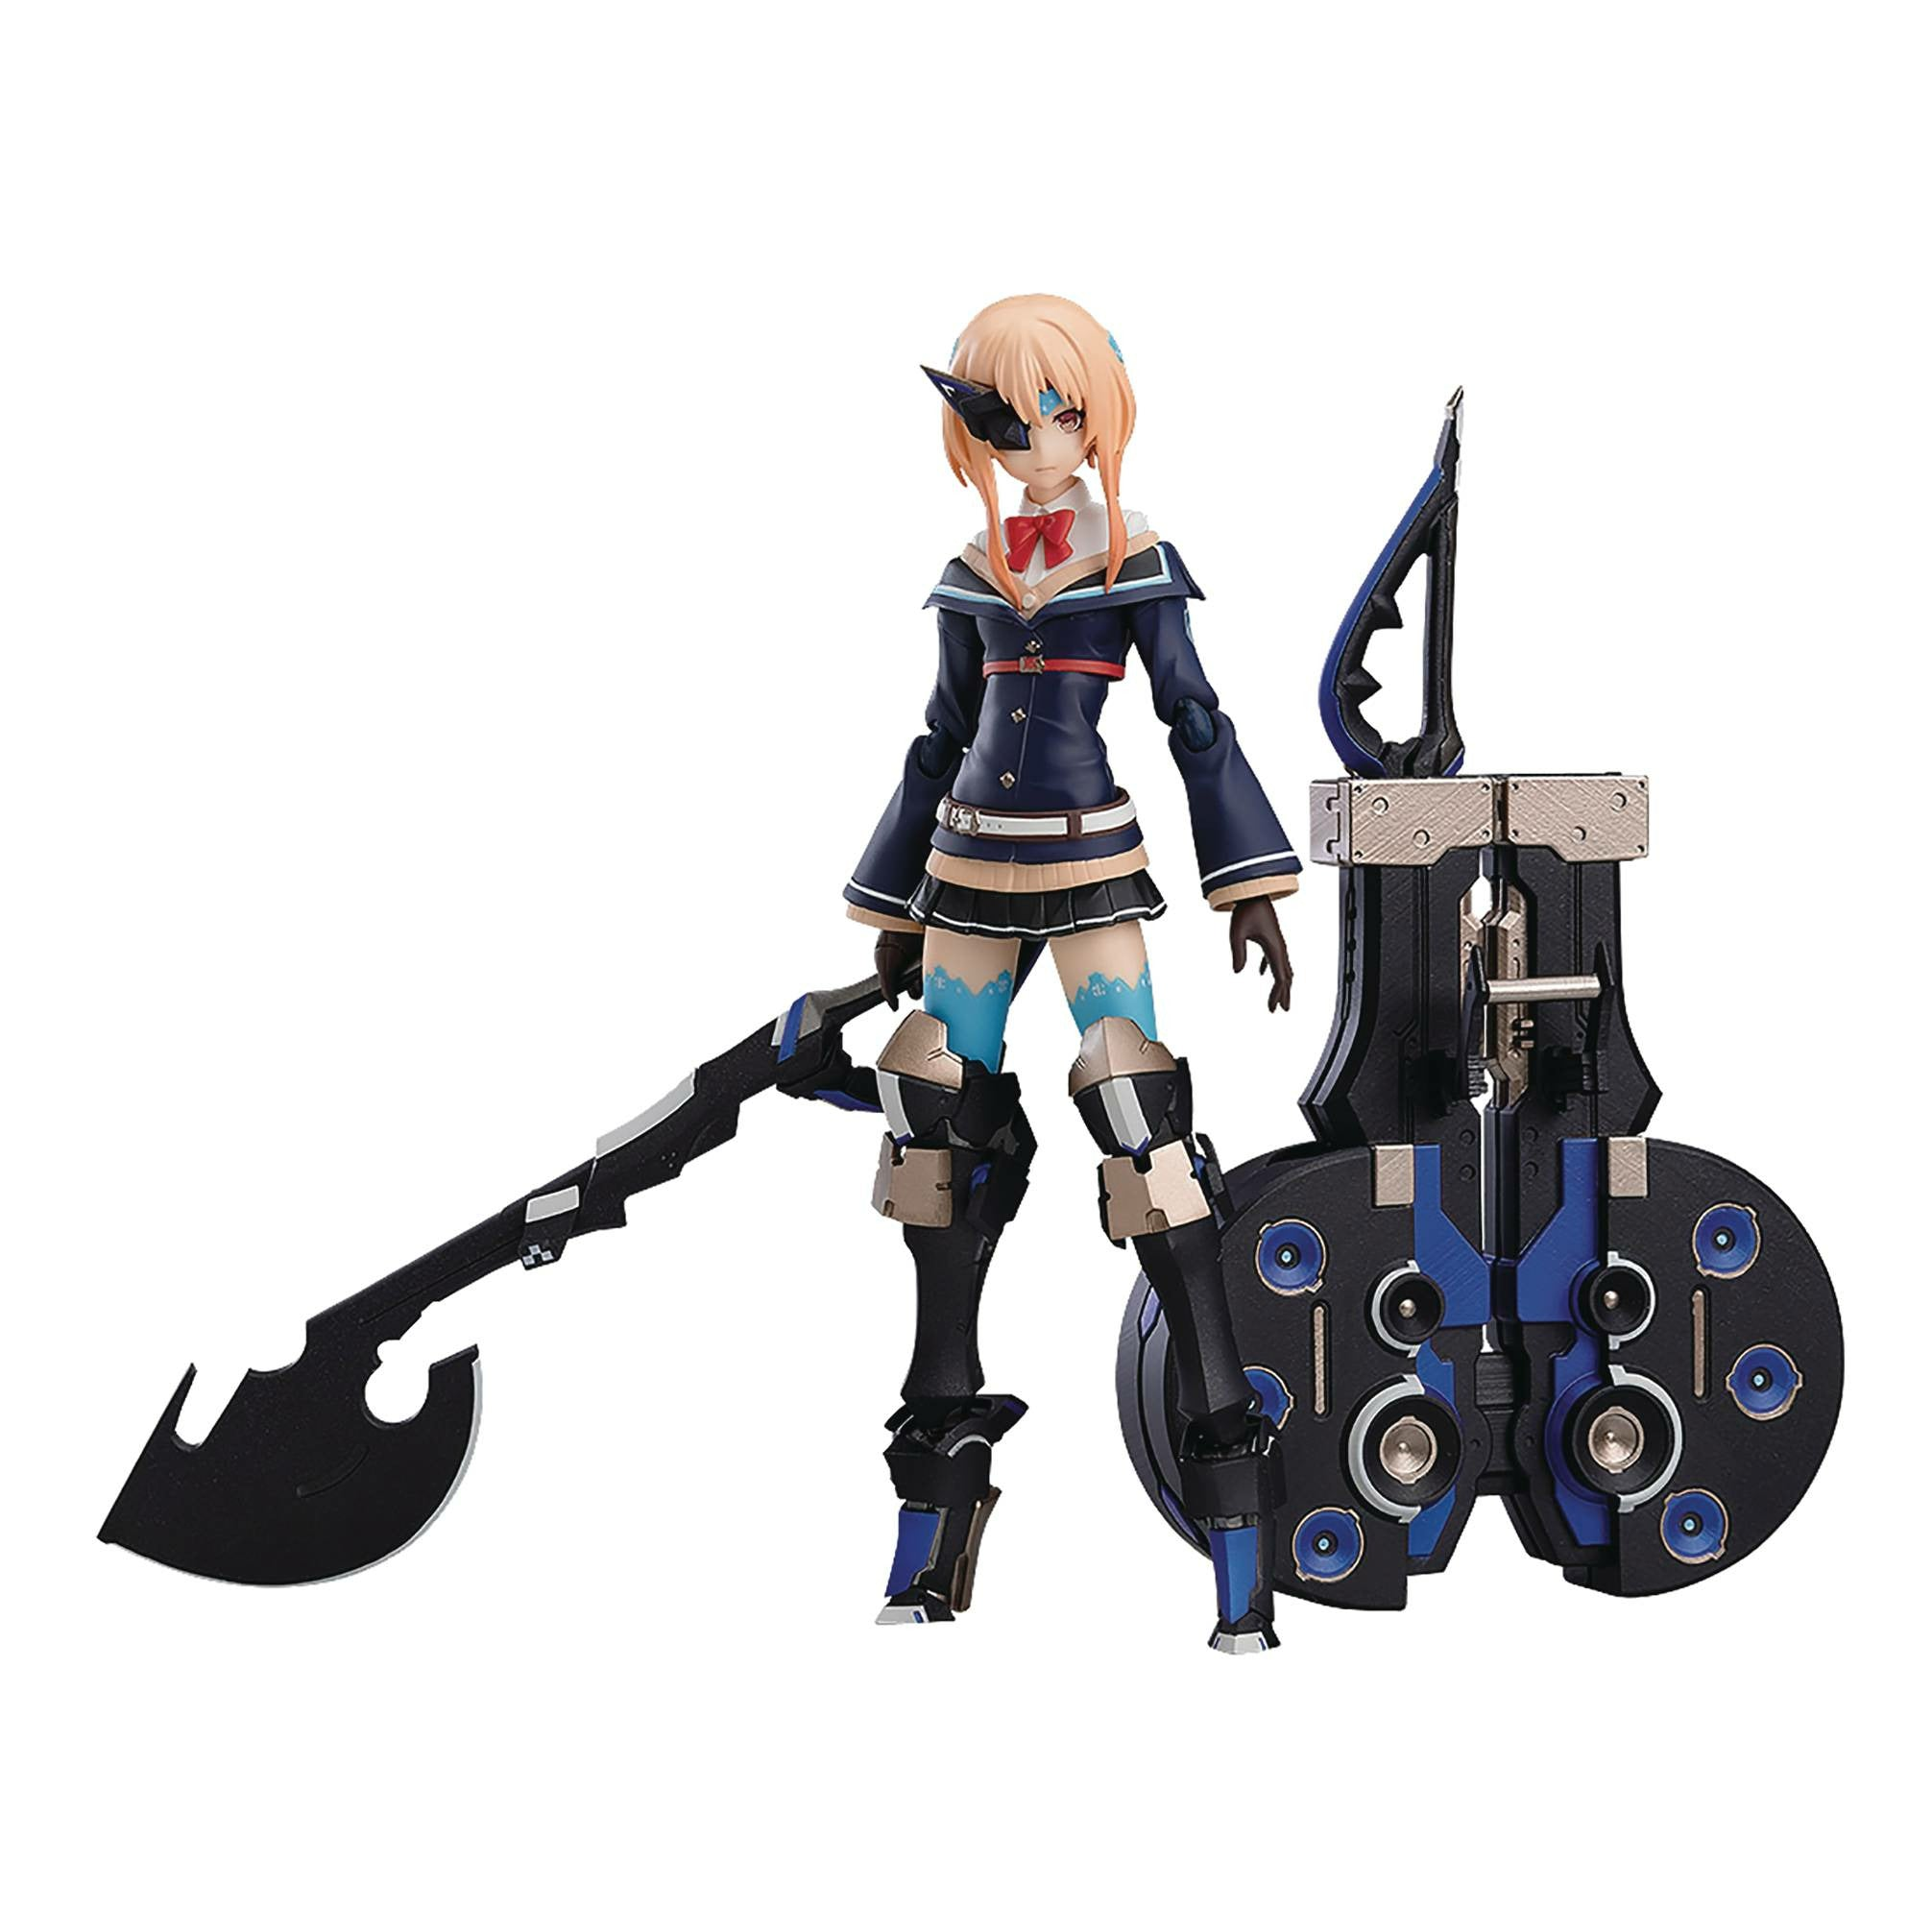 Heavily Armed High School Girls San FIGMA Action Figure